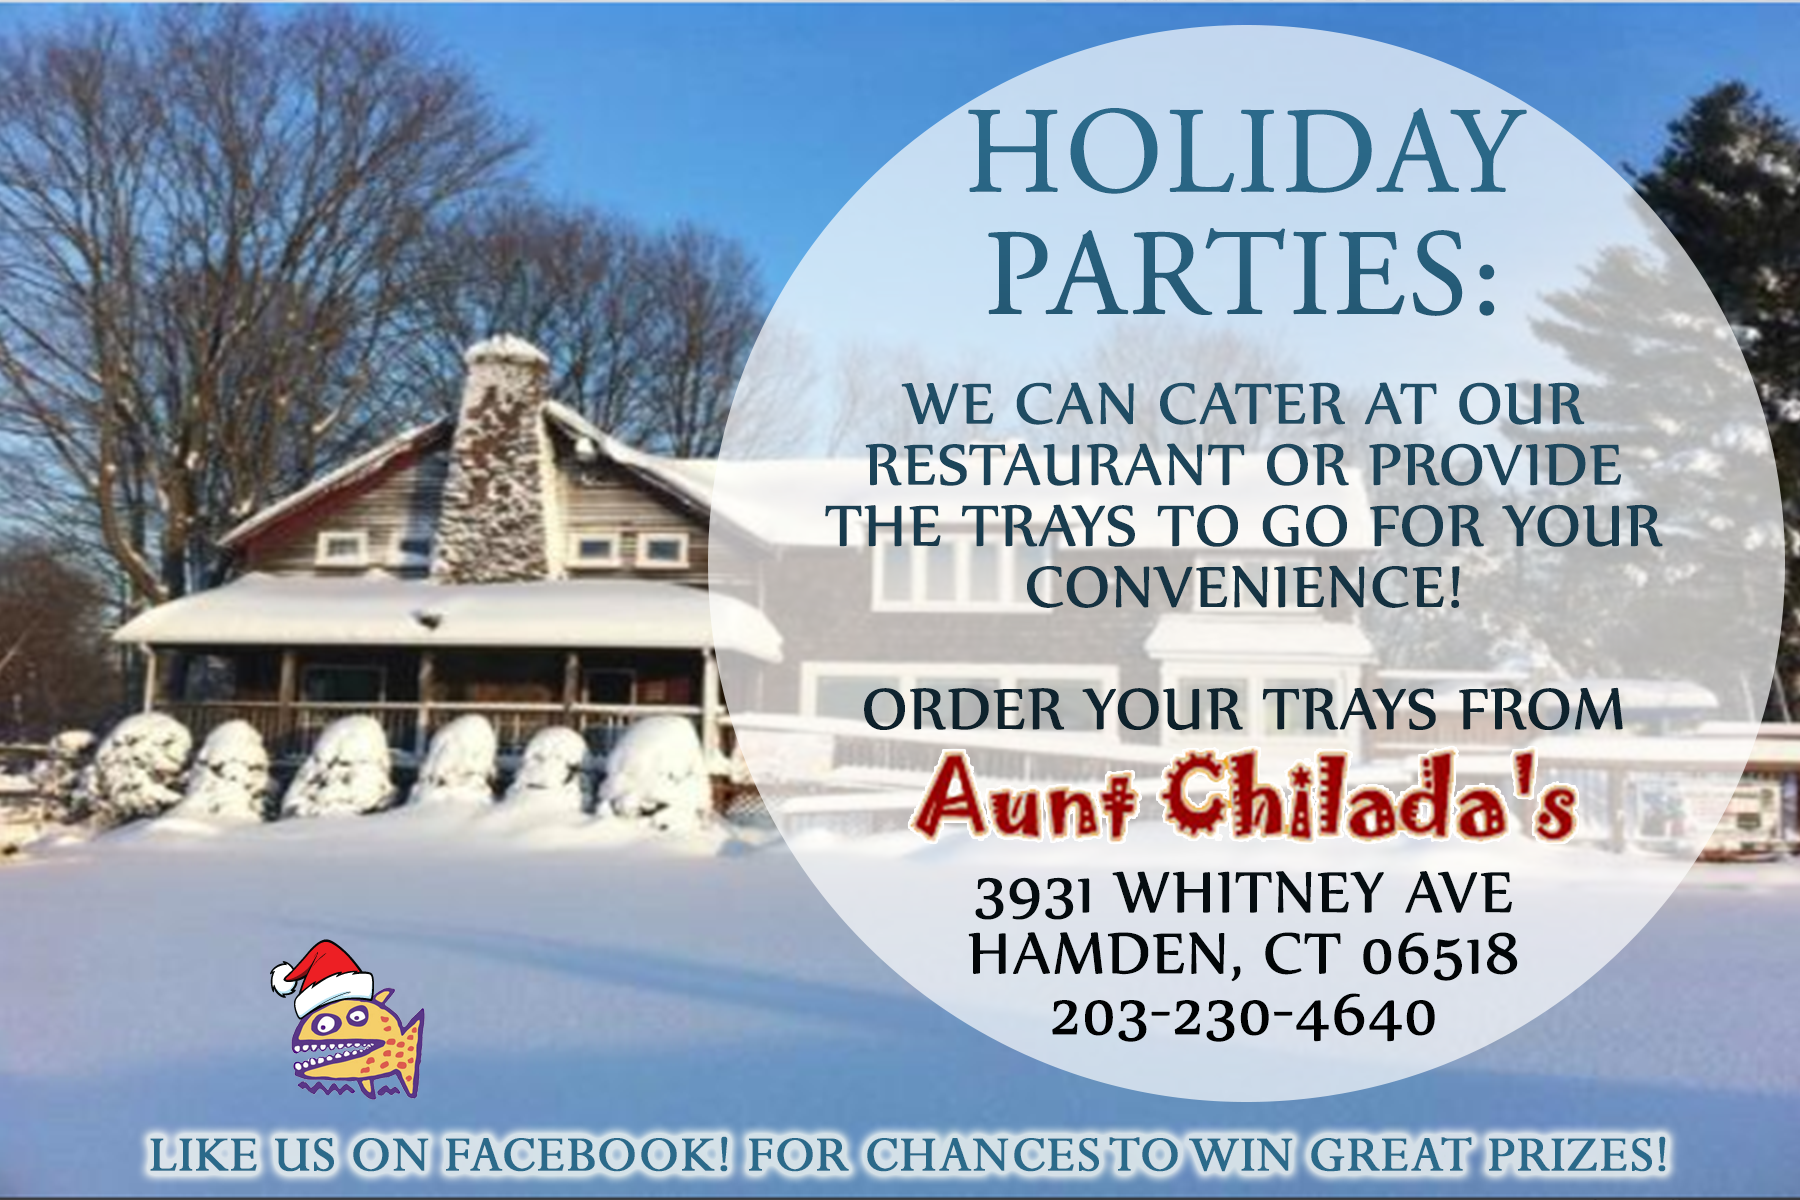 Holiday parties: we can cater at our restaurant or provide the trays to go for your convenience.  Order your trays from aunt chiladas. 3931 Whitney Avenue, Hamden, Connecticut 06518. 203-230-4640. Like us on facebook for chances to win great prizes.